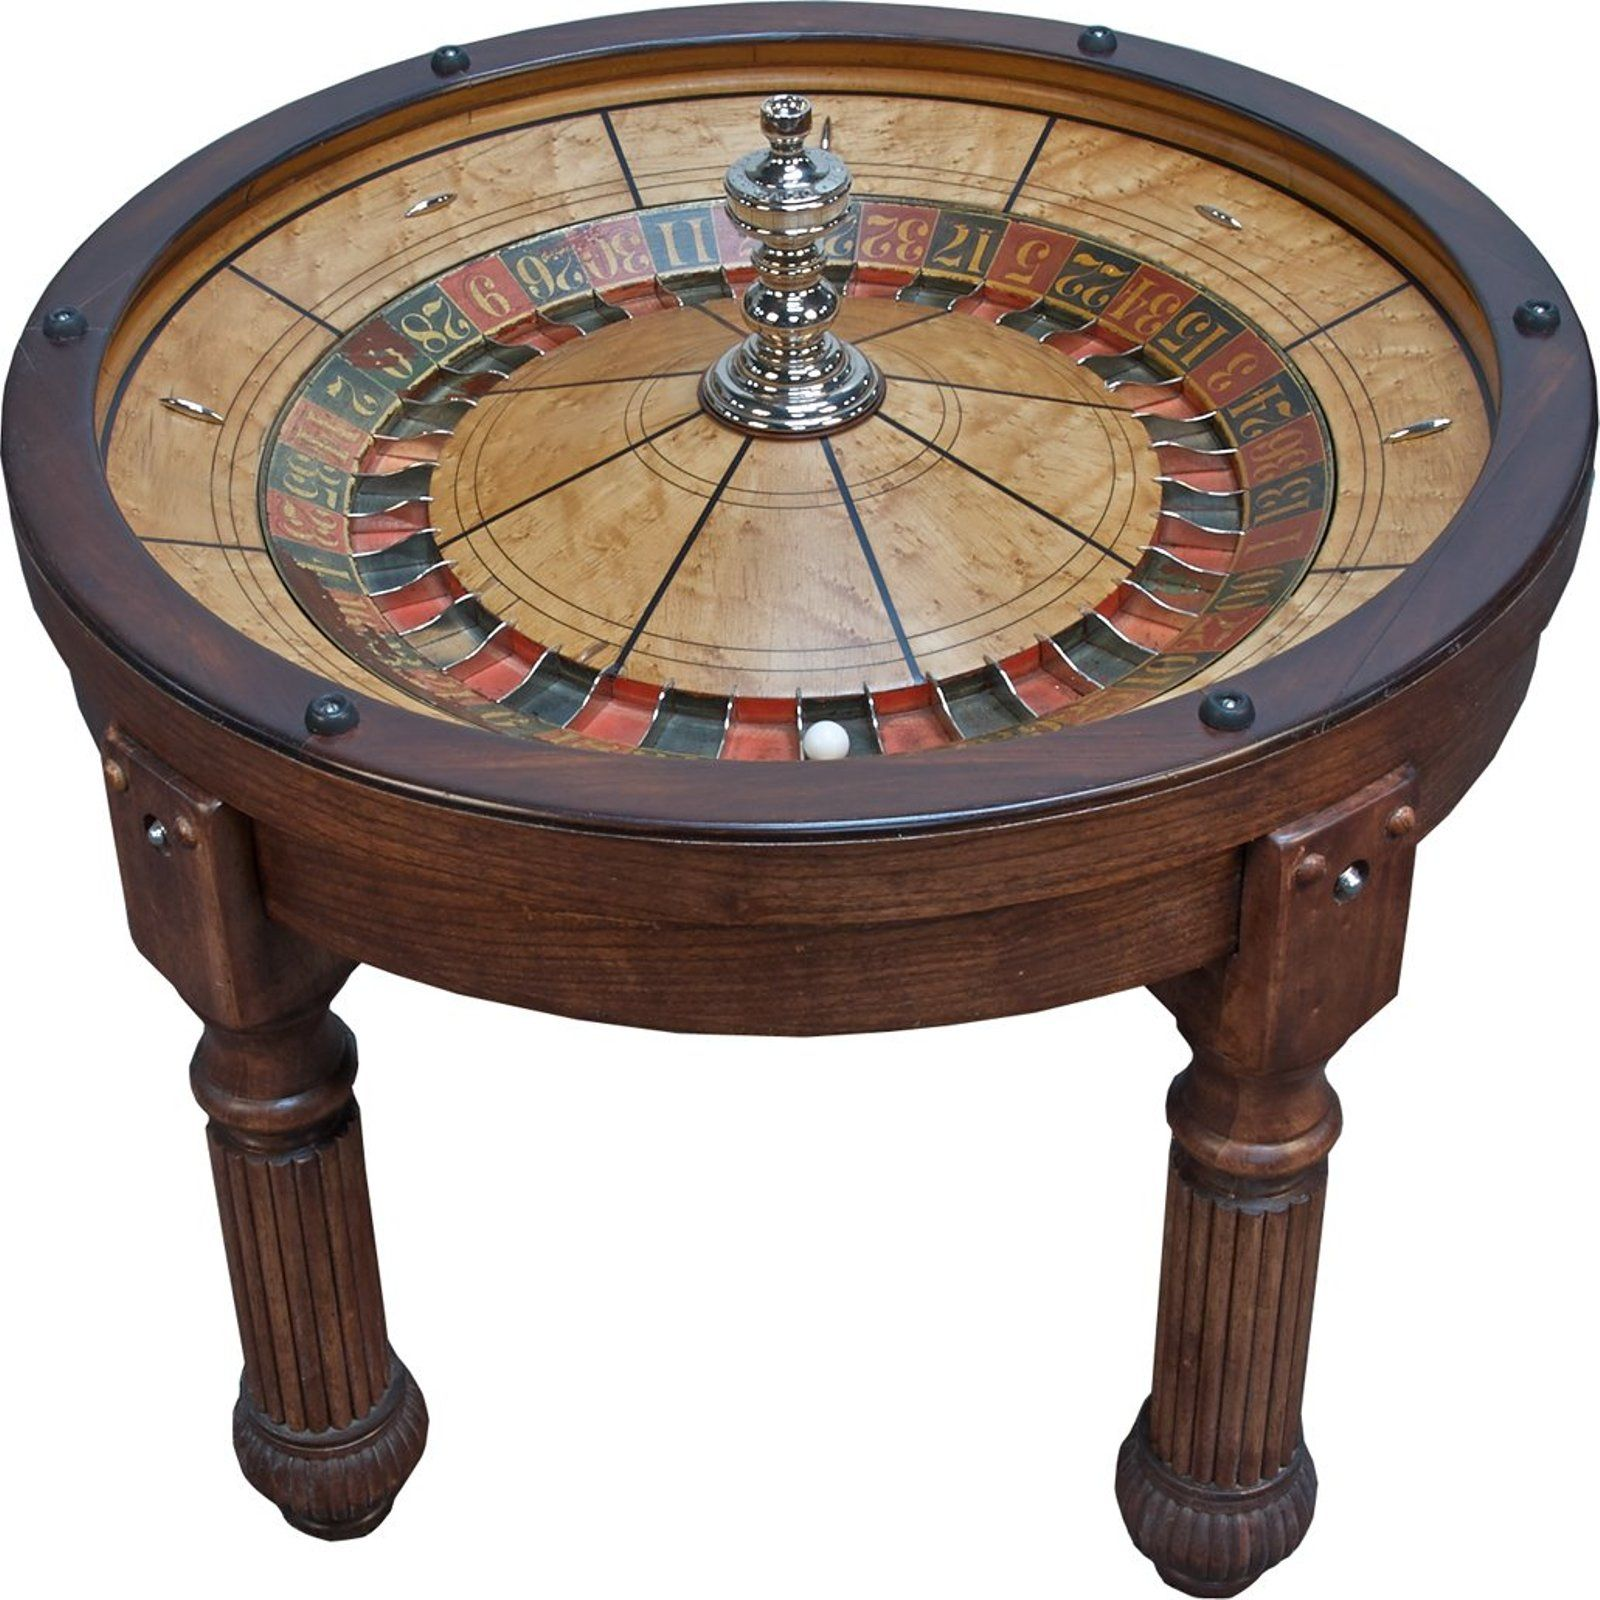 HC Evans Co Antique Roulette Wheel Coffee Table on Table